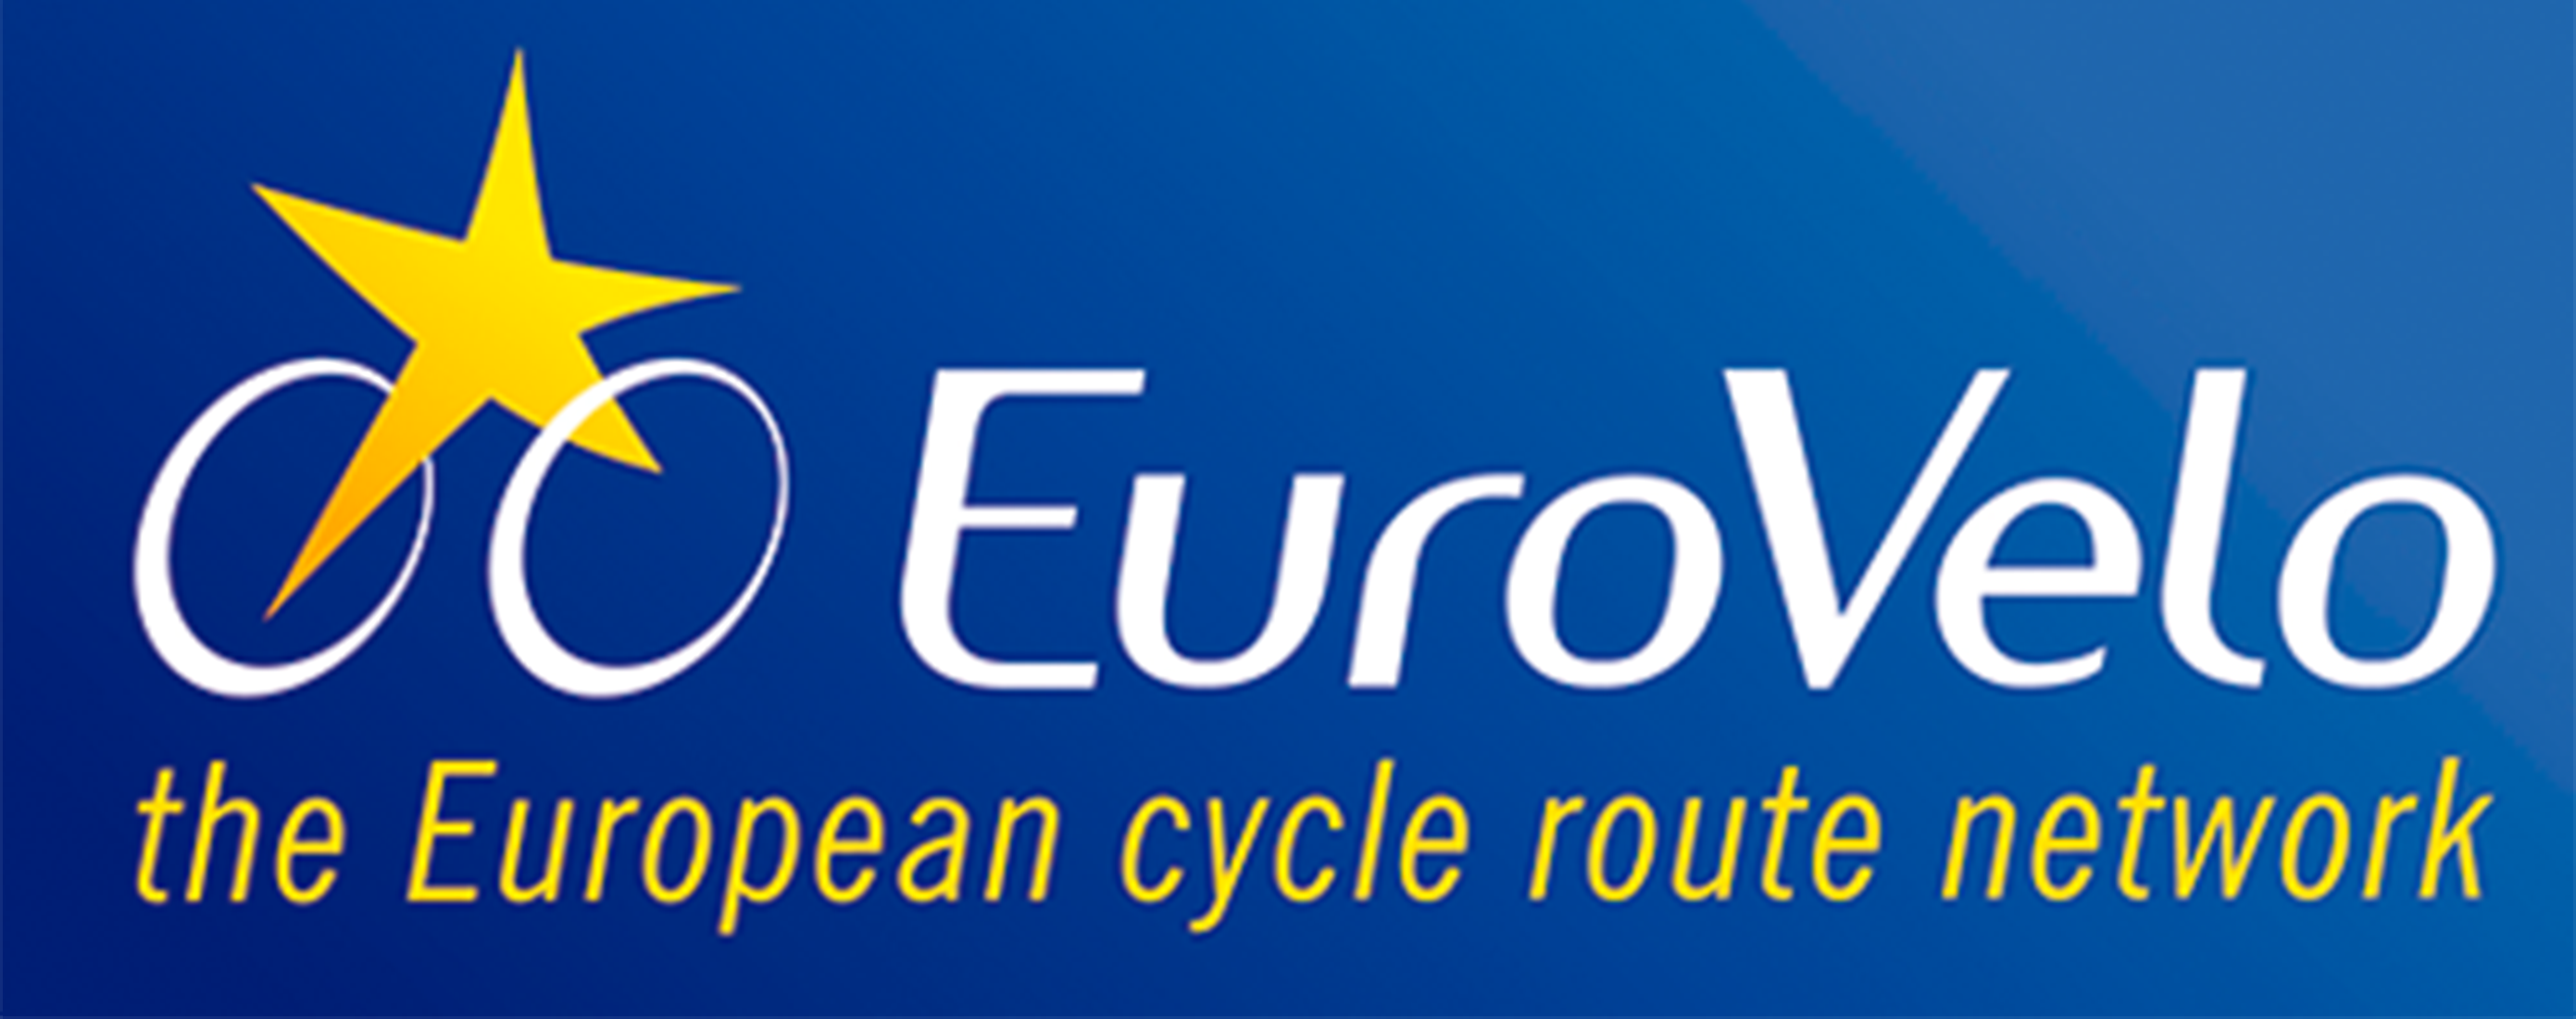 Minsk cycling community became a National coordinator of EuroVelo network in Belarus